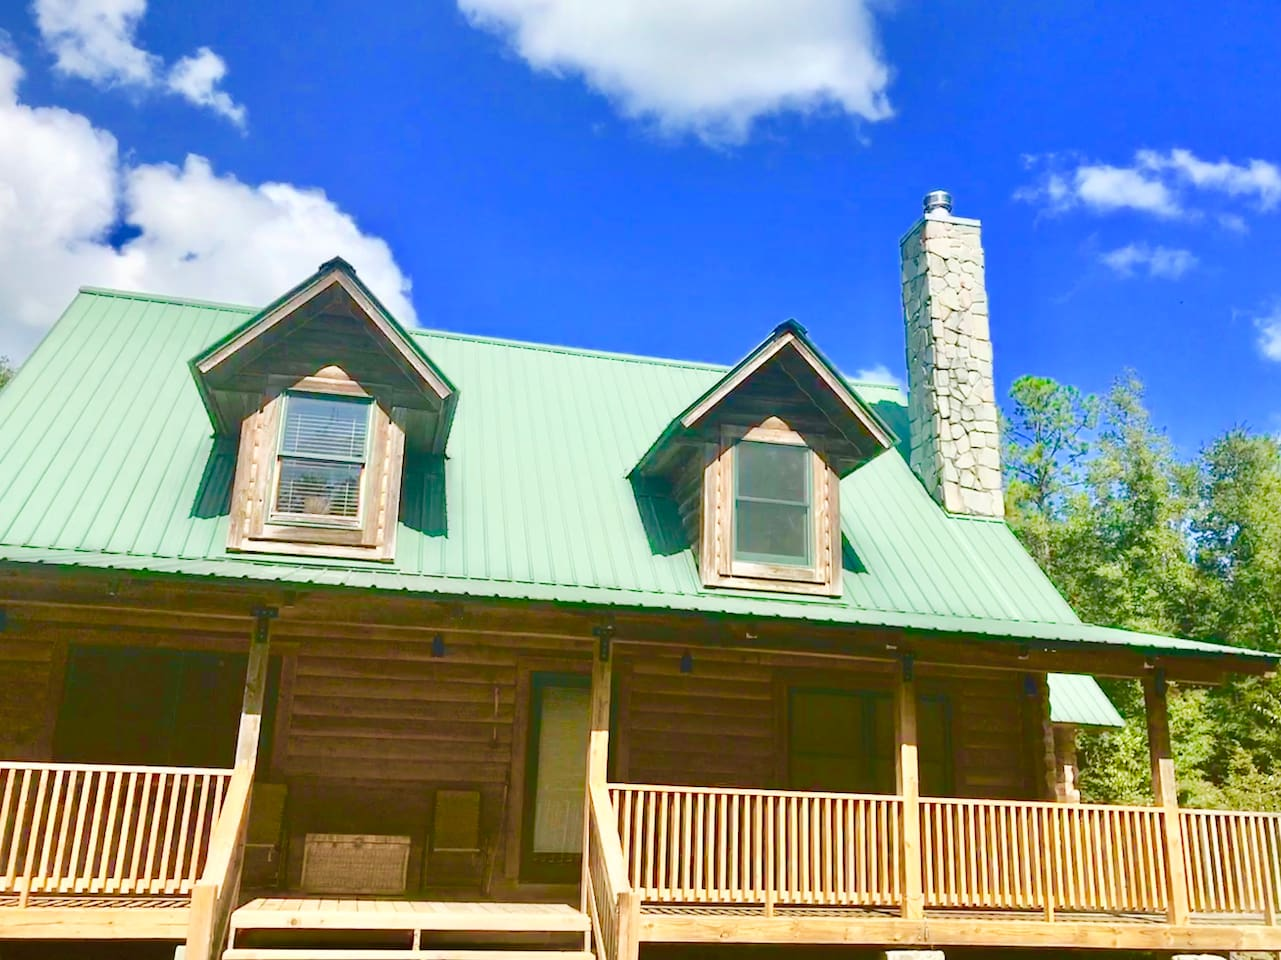 The ENTIRE place is Yours!  TOTALY PRIVATE  Log Cabin Getaway. When you rent - you rent the entire 2500aq ft cabin!  Indoor pool -your only! Outdoor pool - YOURS ONLY! Sauna- YOUS ONLY!  5 Acres of fenced PRIVATE yard -Pets welcome!